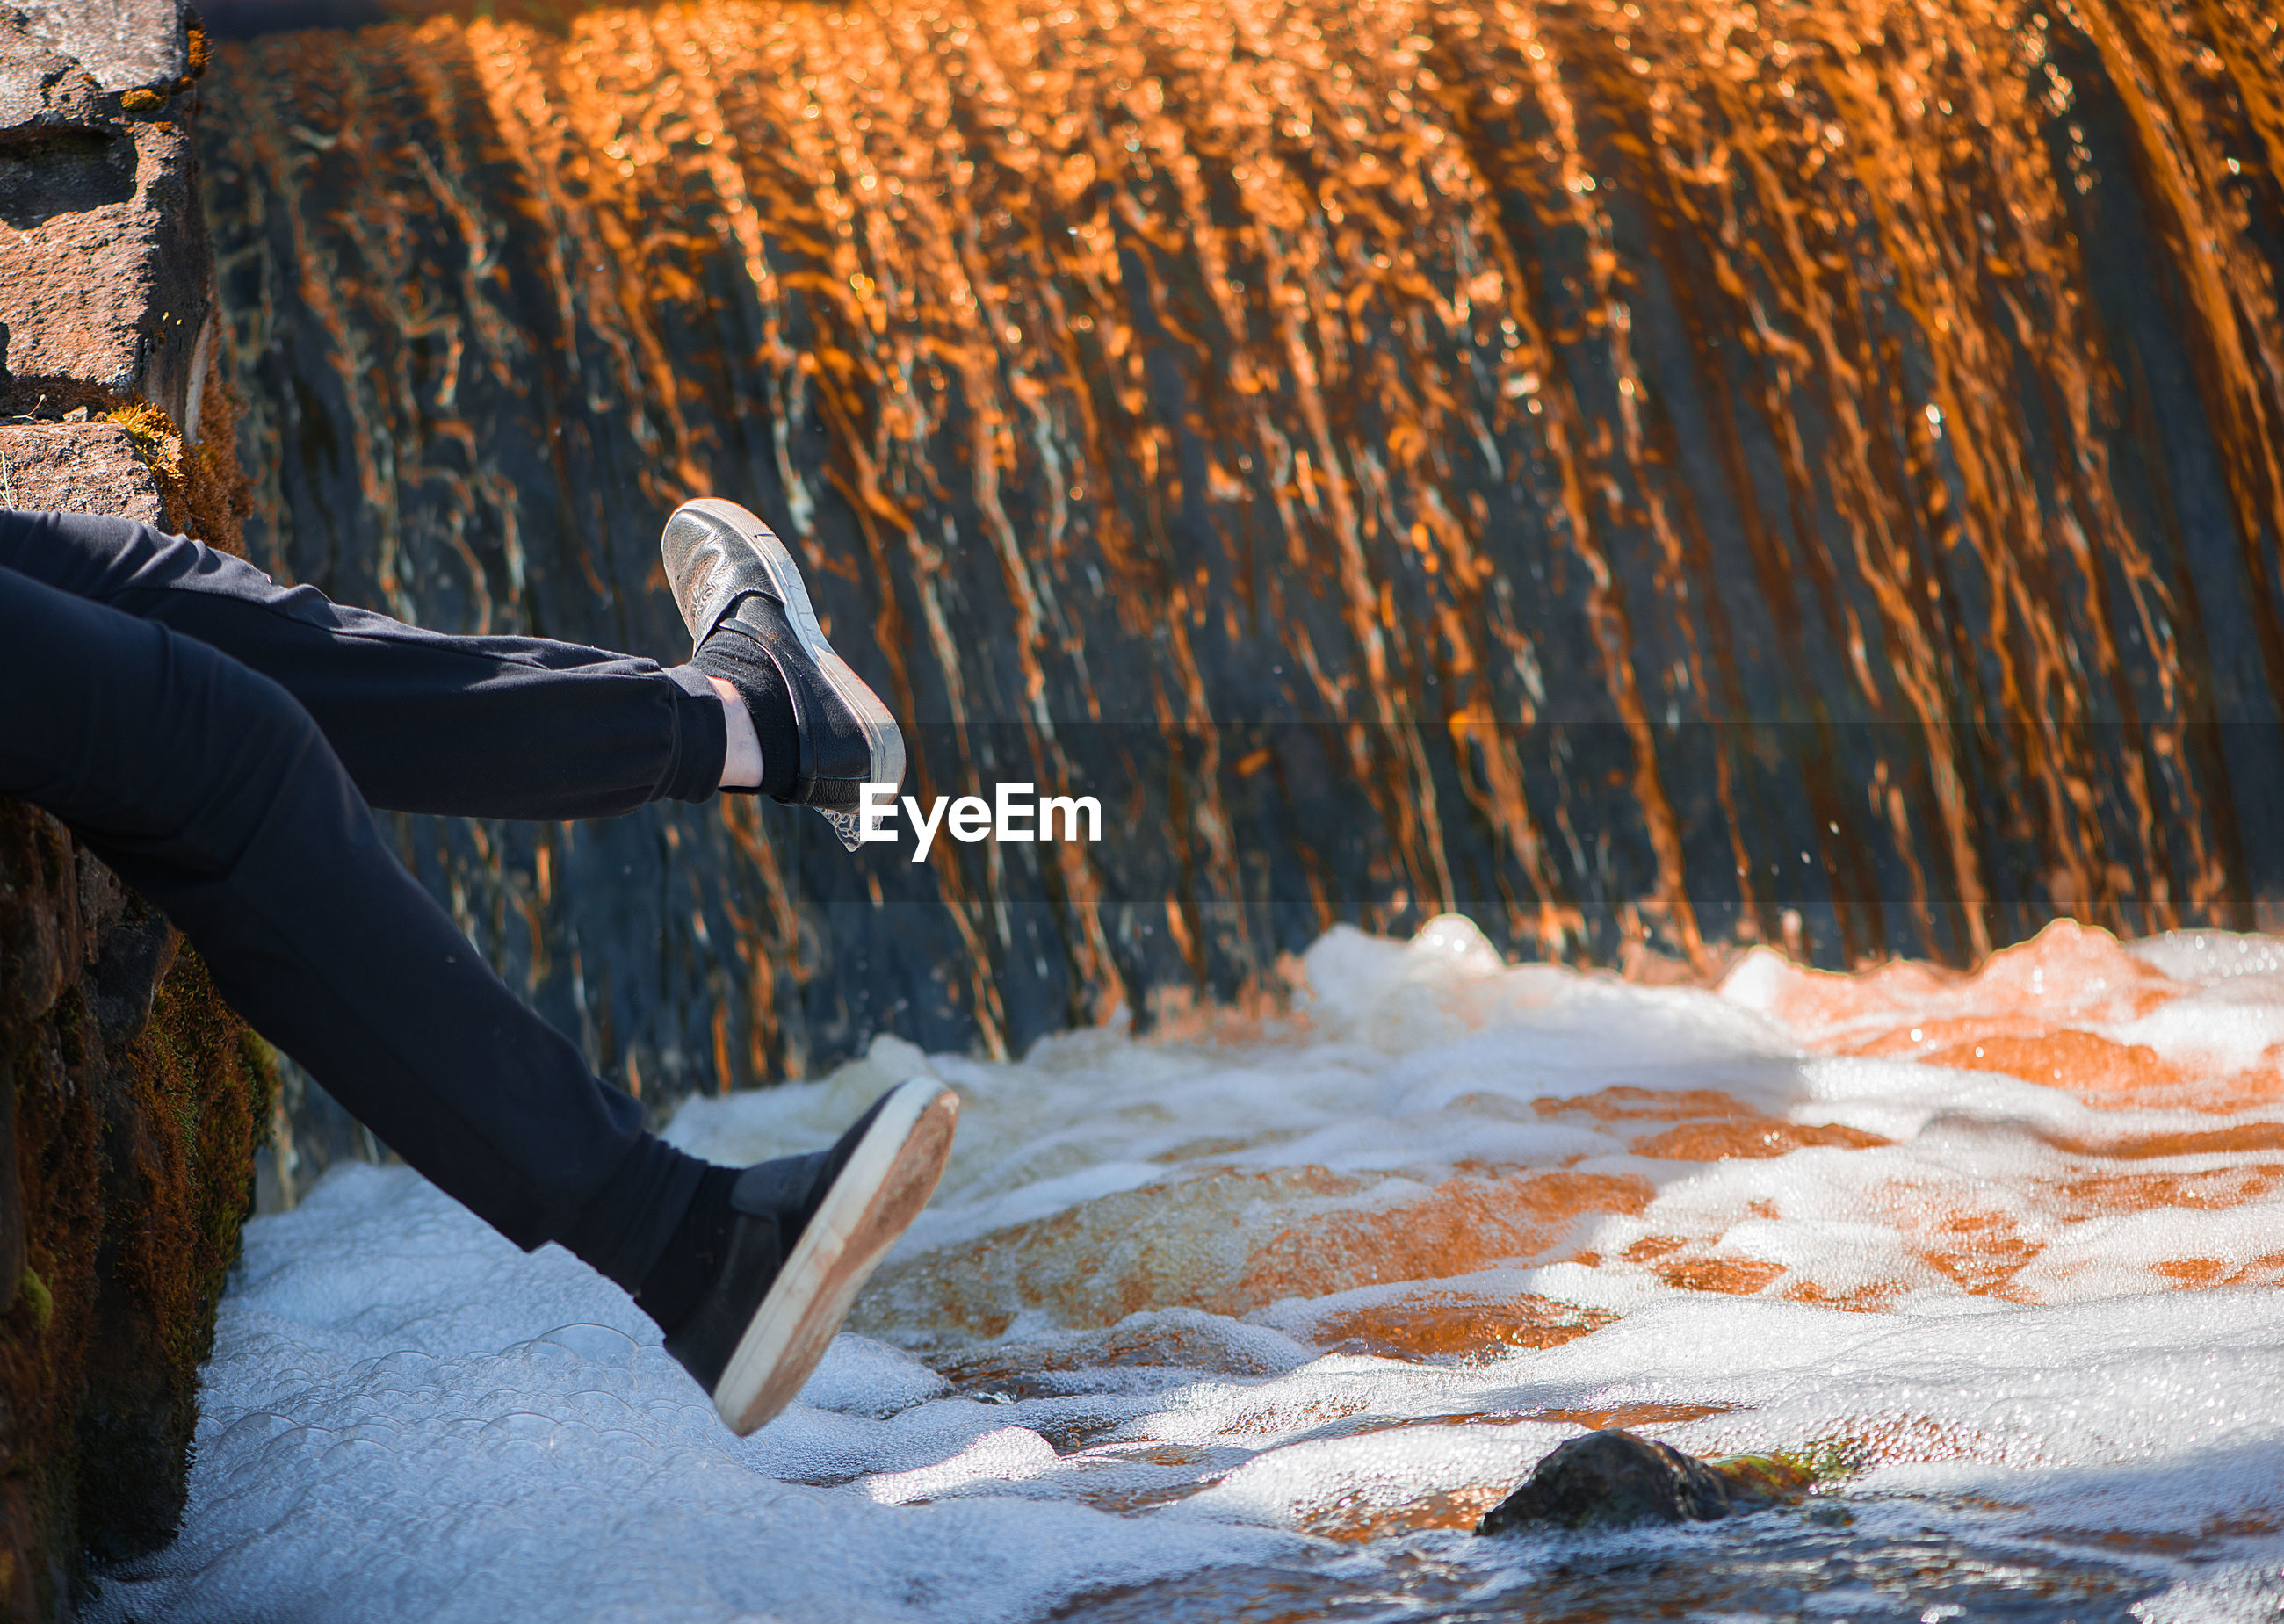 Low section of person sitting on rock over water